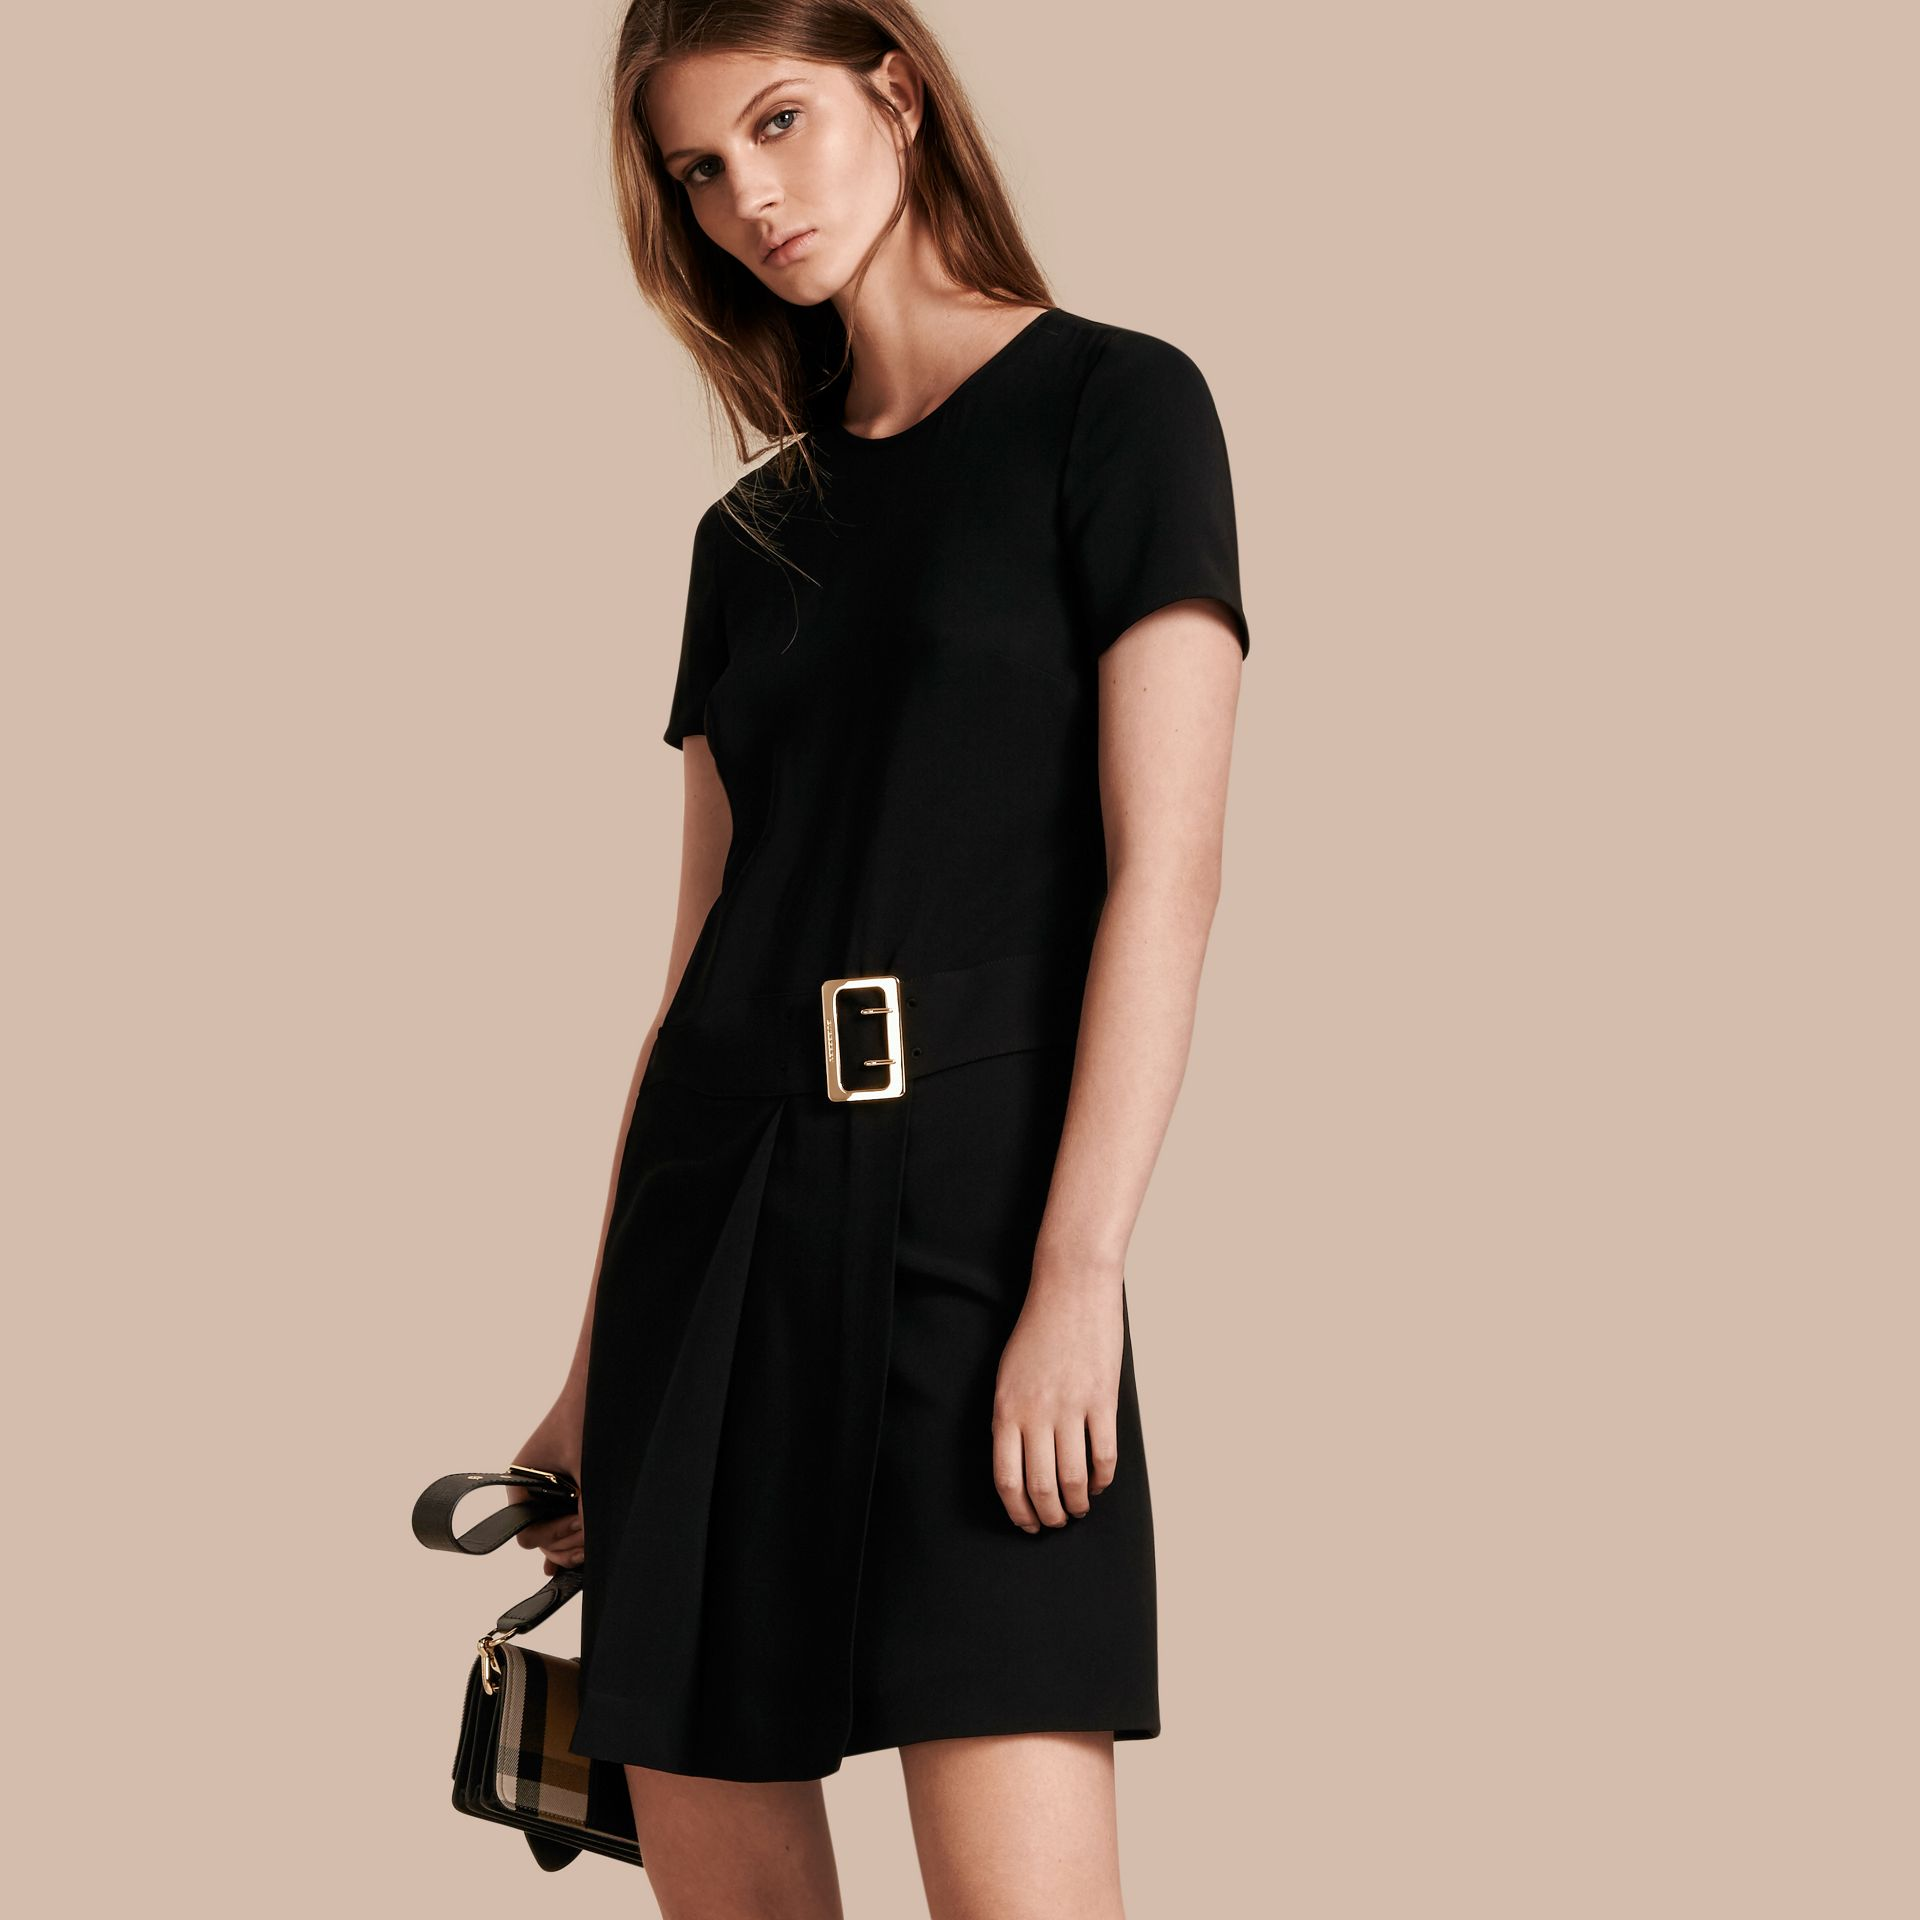 Black Buckle Detail Pleated Shift Dress Black - gallery image 1